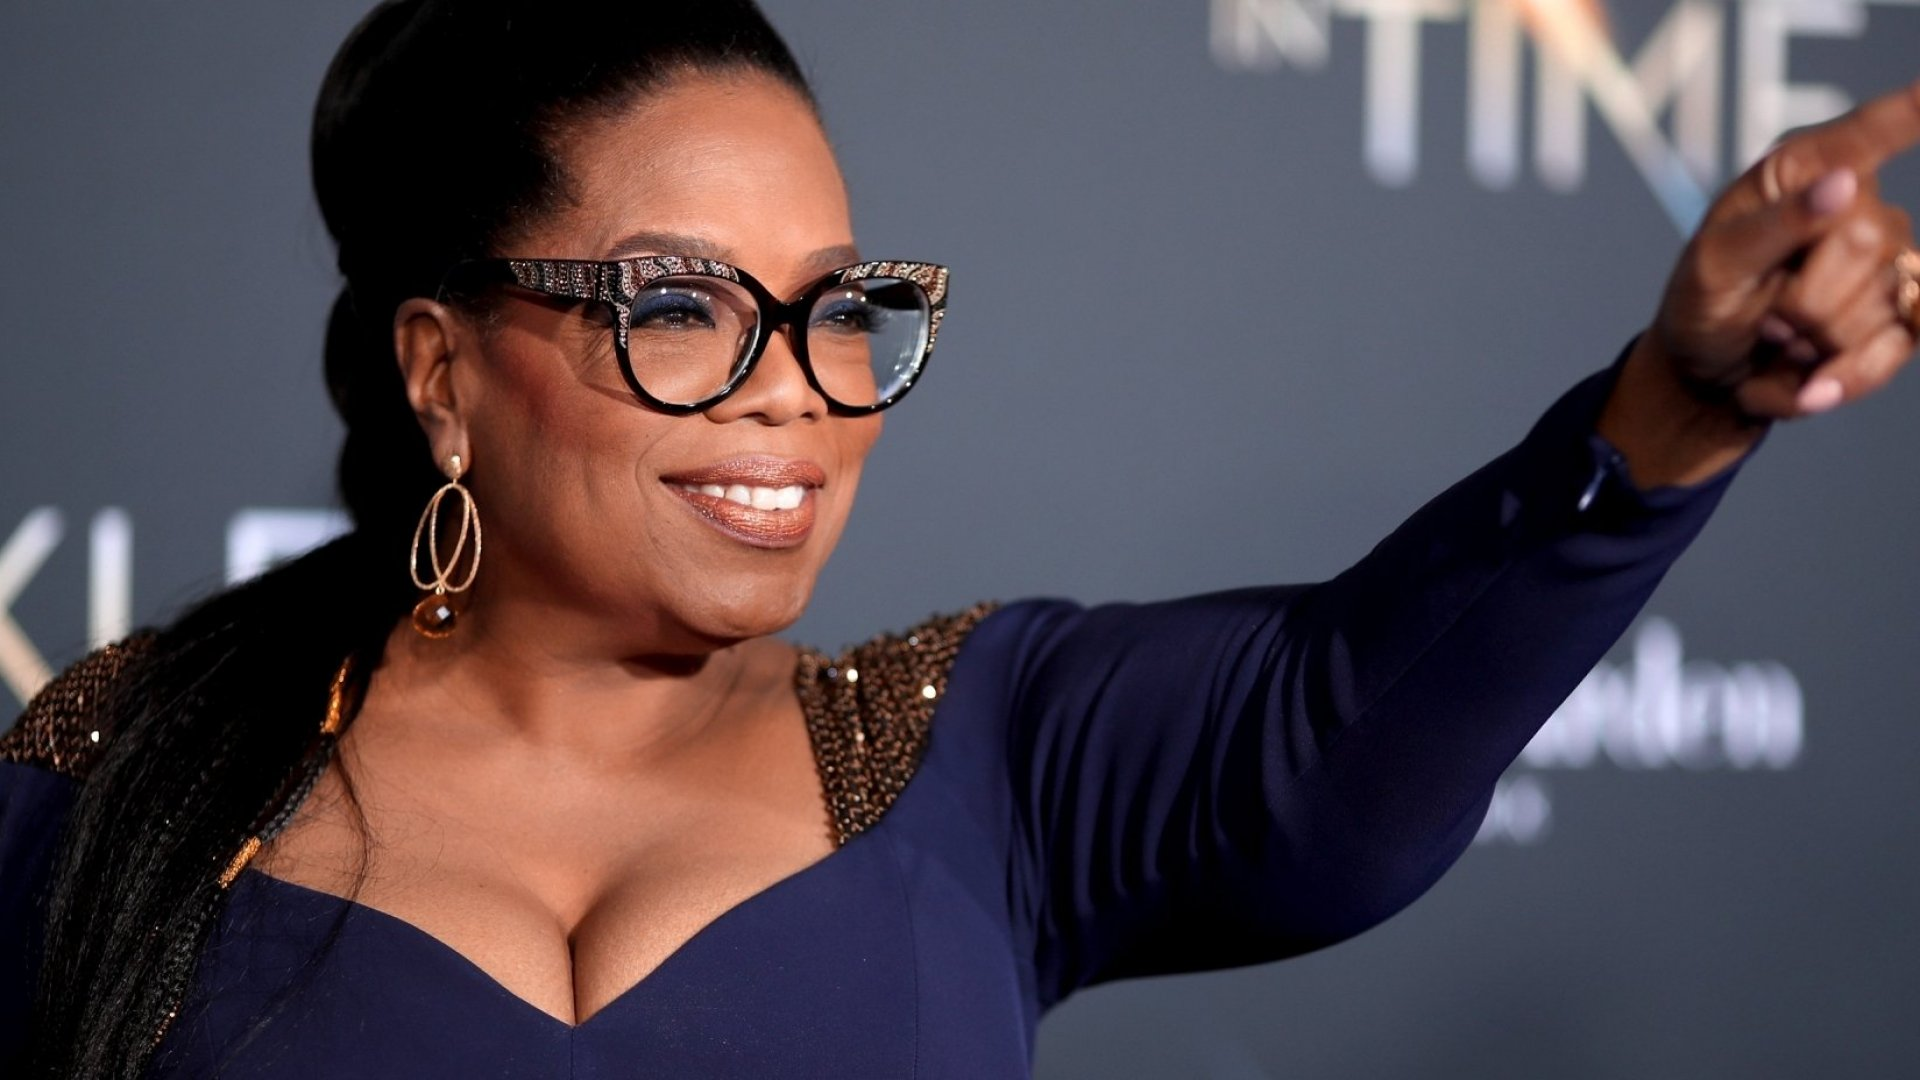 7 Wise Quotes From Oprah on Career, Life, and Love